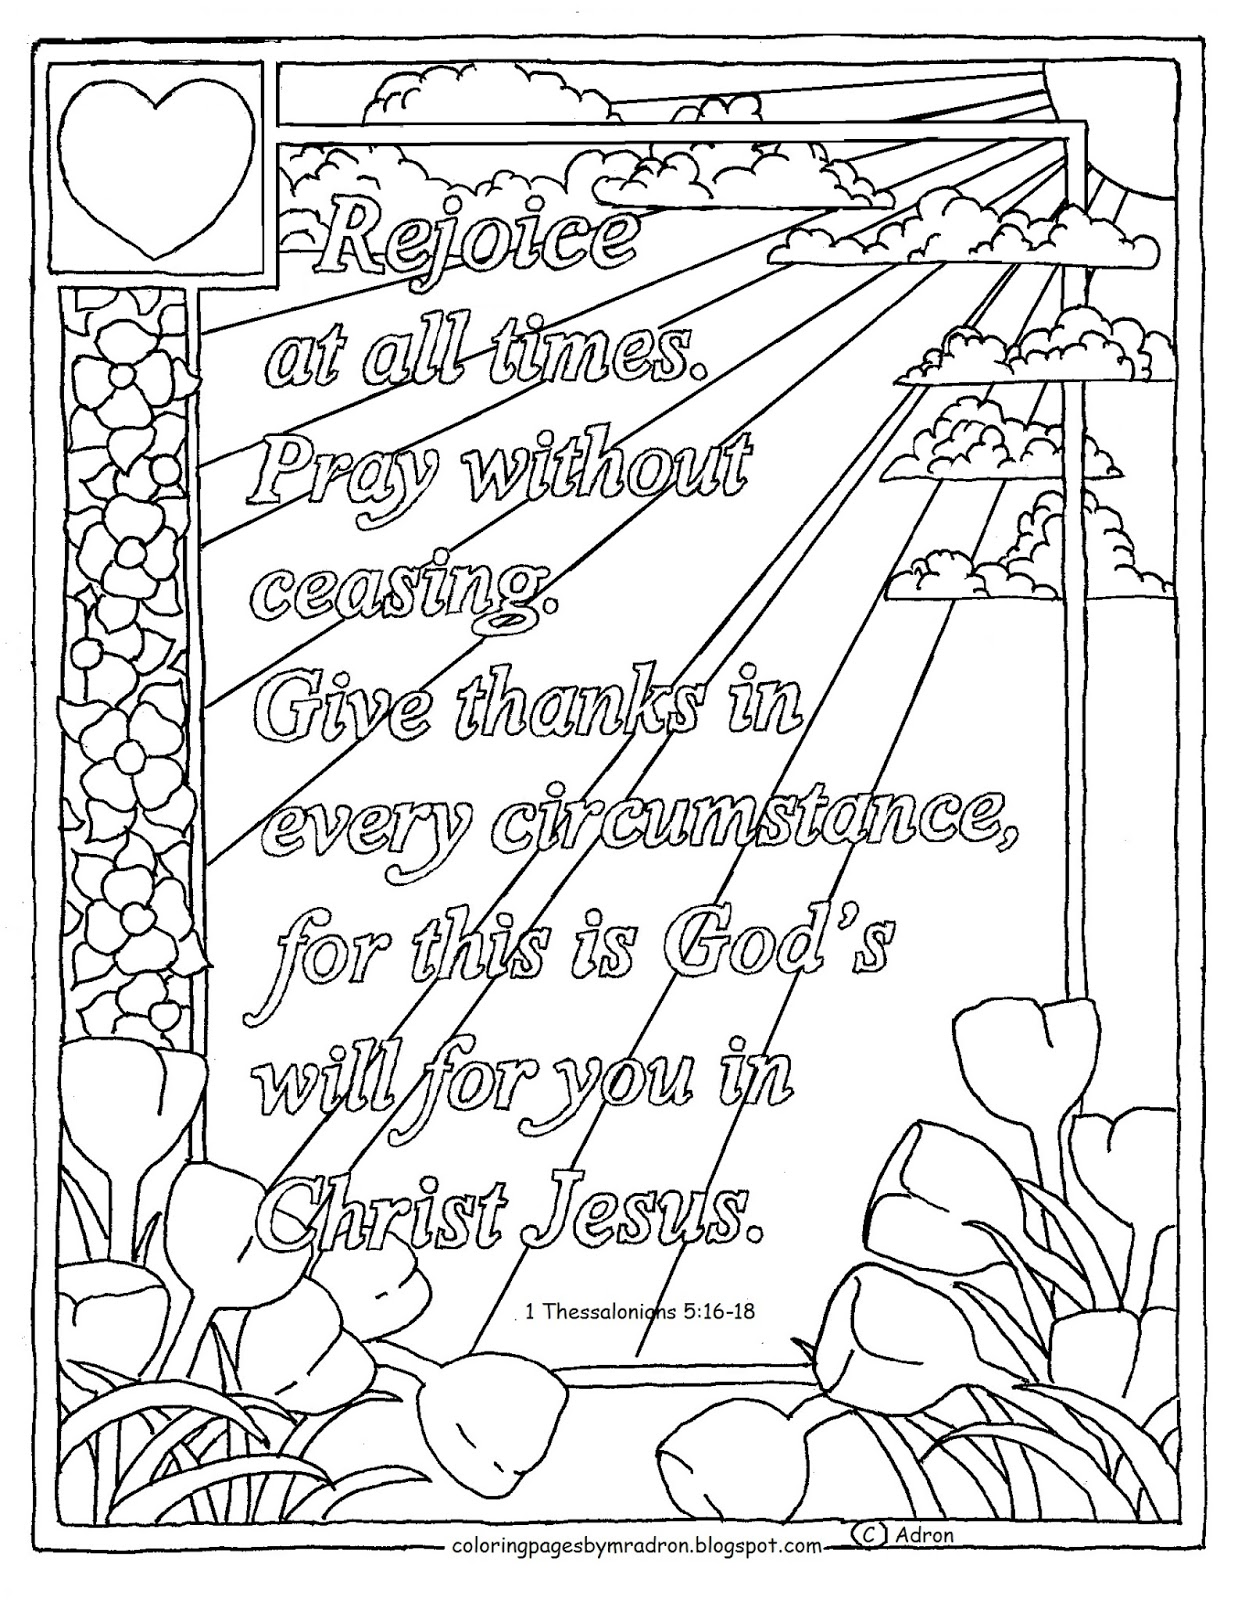 Coloring Pages For Kids By Mr Adron 1 Thessalonians 516